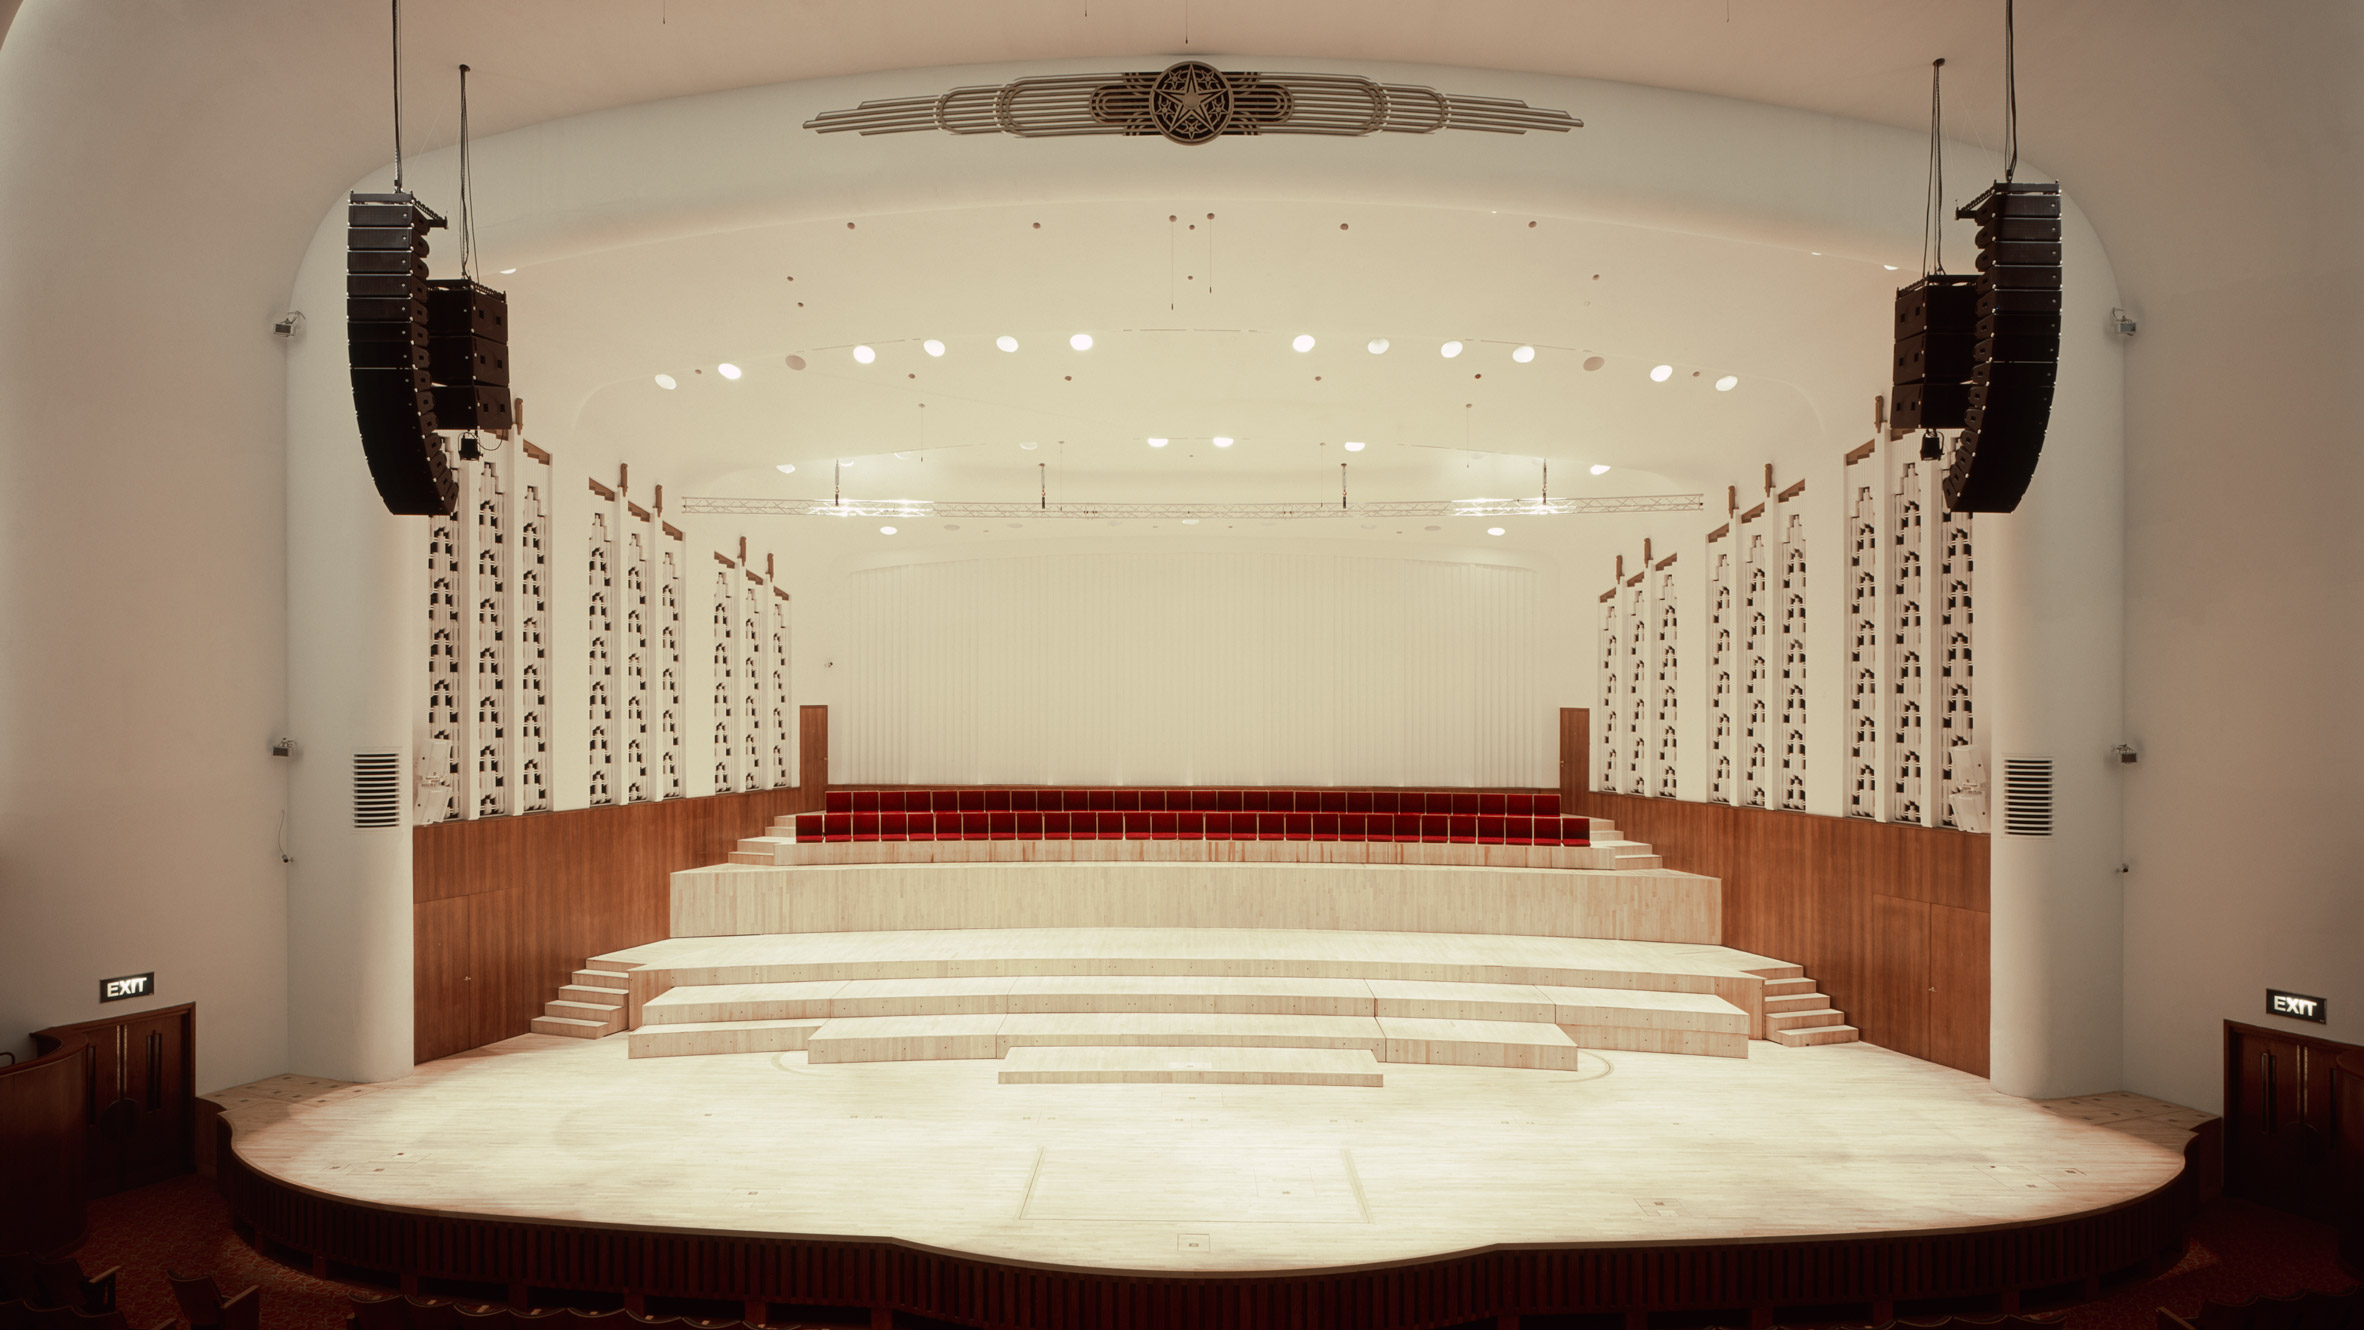 Caruso St Johns Liverpool Philharmonic Hall Refurbishment Revives An Art Deco Masterpiece